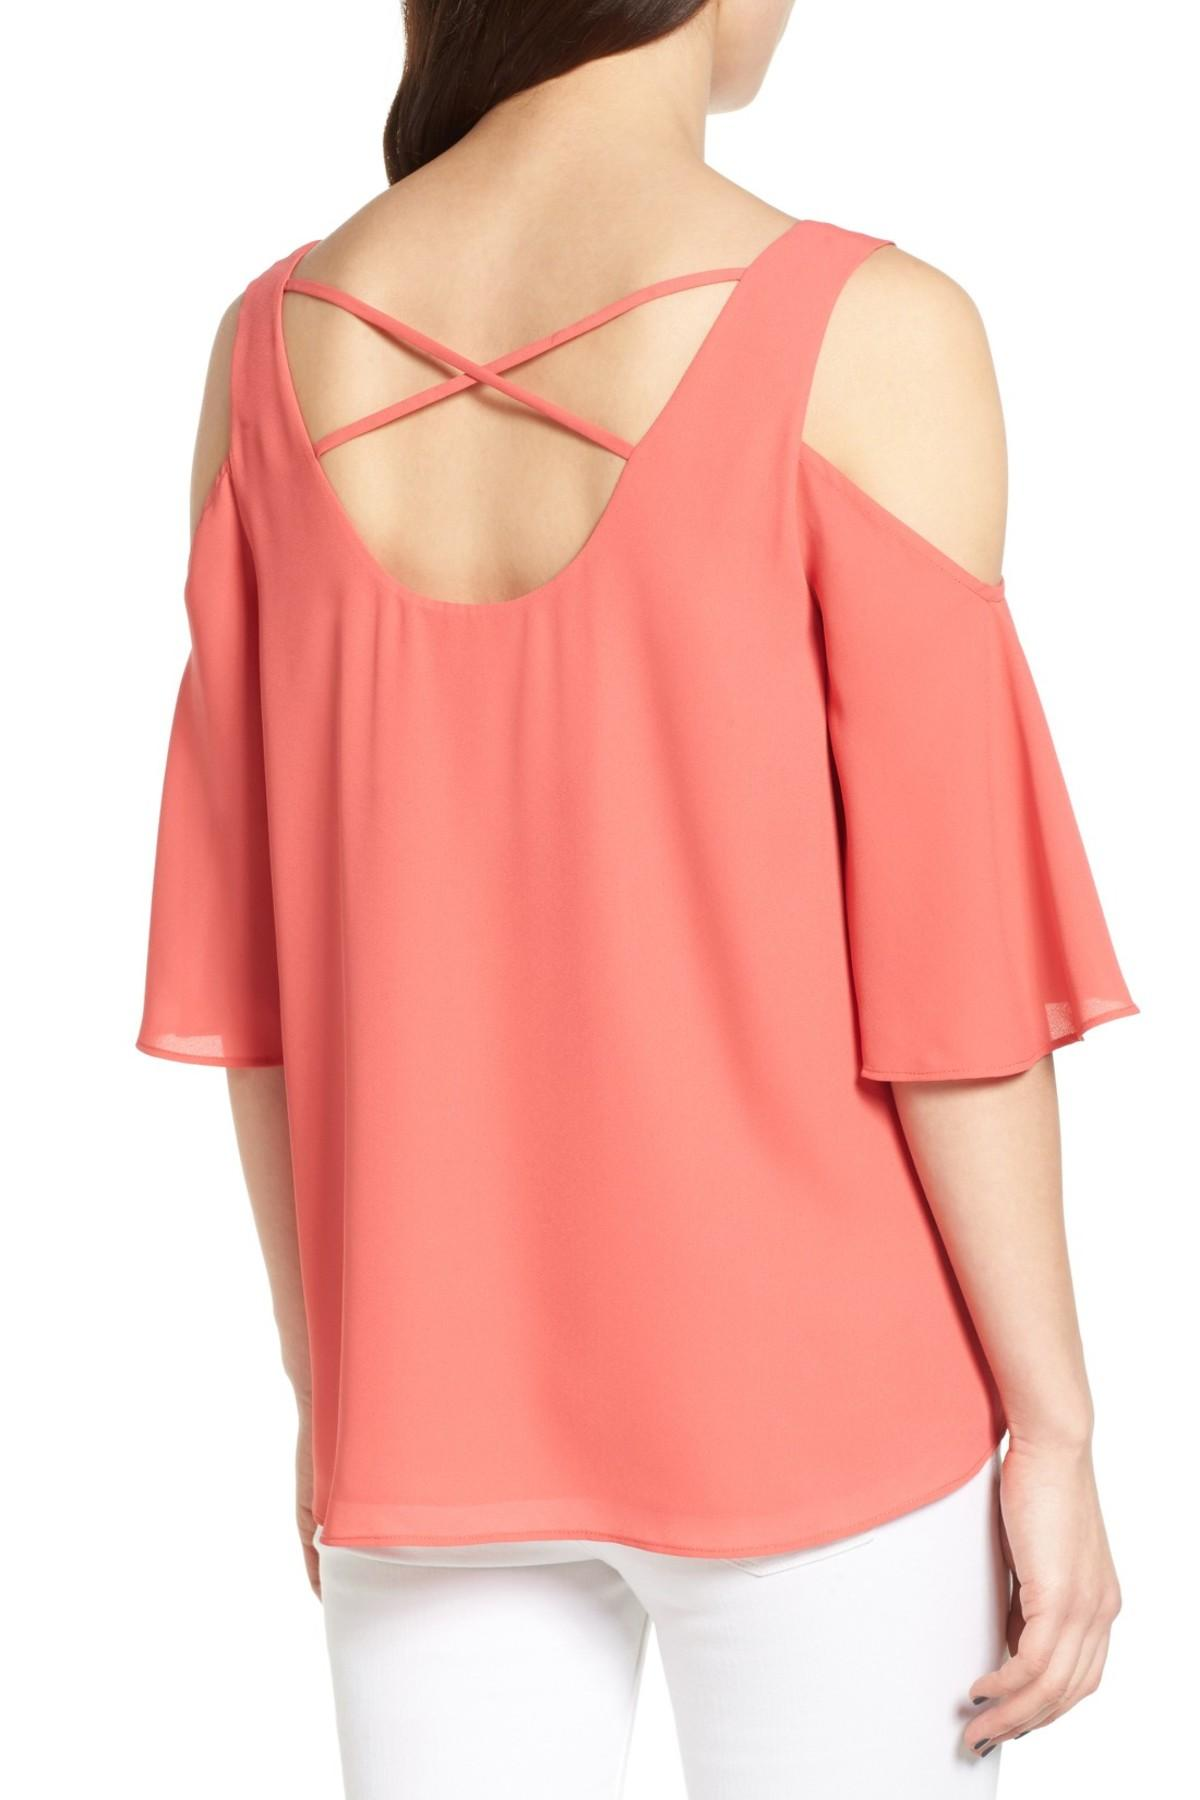 f7e890003efdd2 Lyst - Chelsea28 Chiffon Cold Shoulder Top in Pink